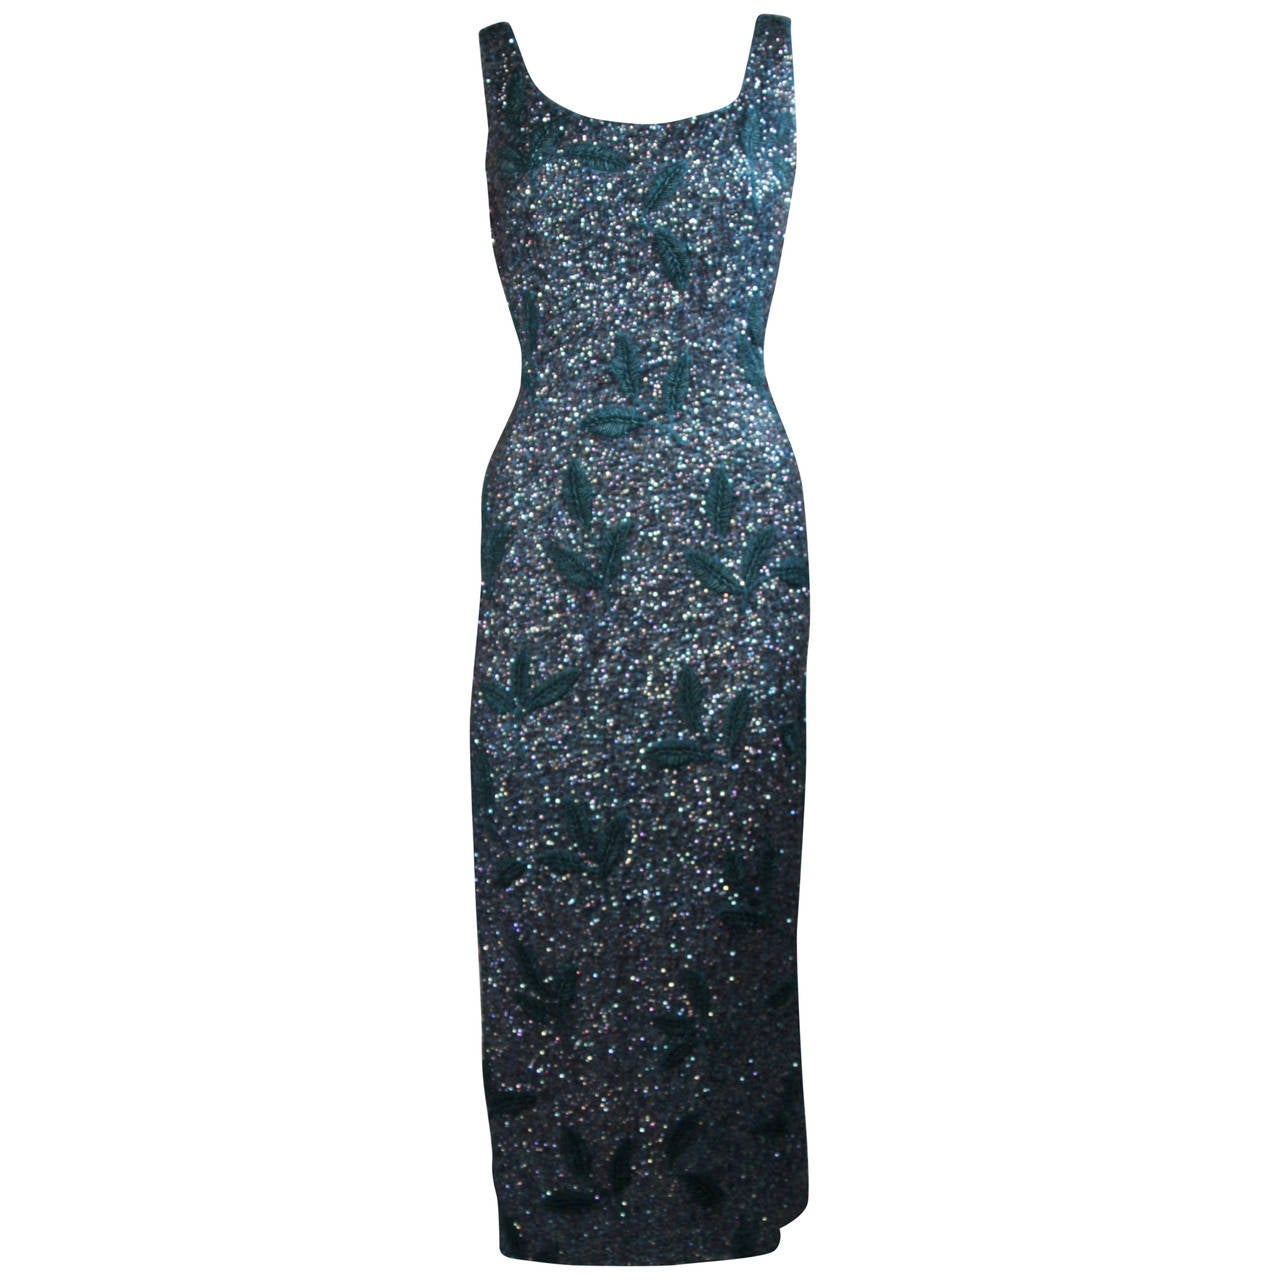 Custom 1960's Sapphire Blue Beaded Gown with Sequins Size Small Medium